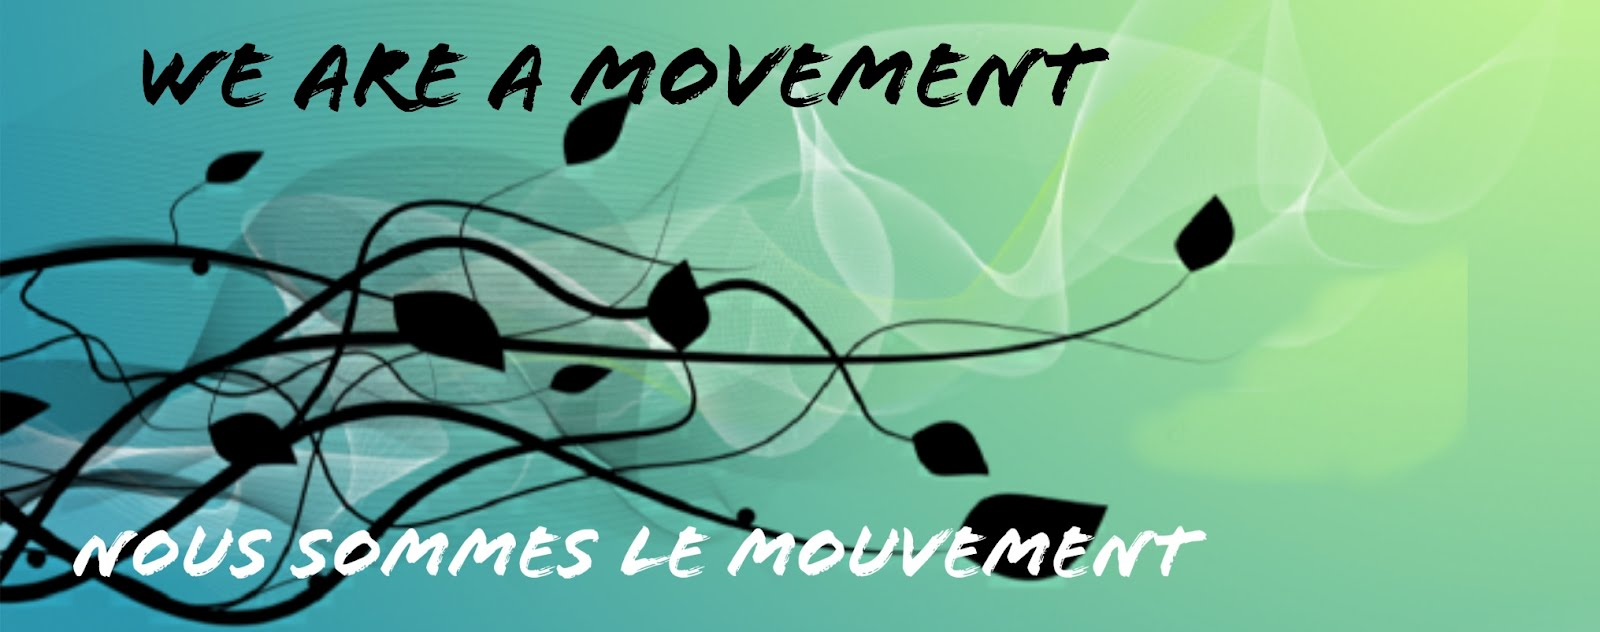 WE ARE A MOVEMENT..NOUS SOMMES LE MOUVEMENT